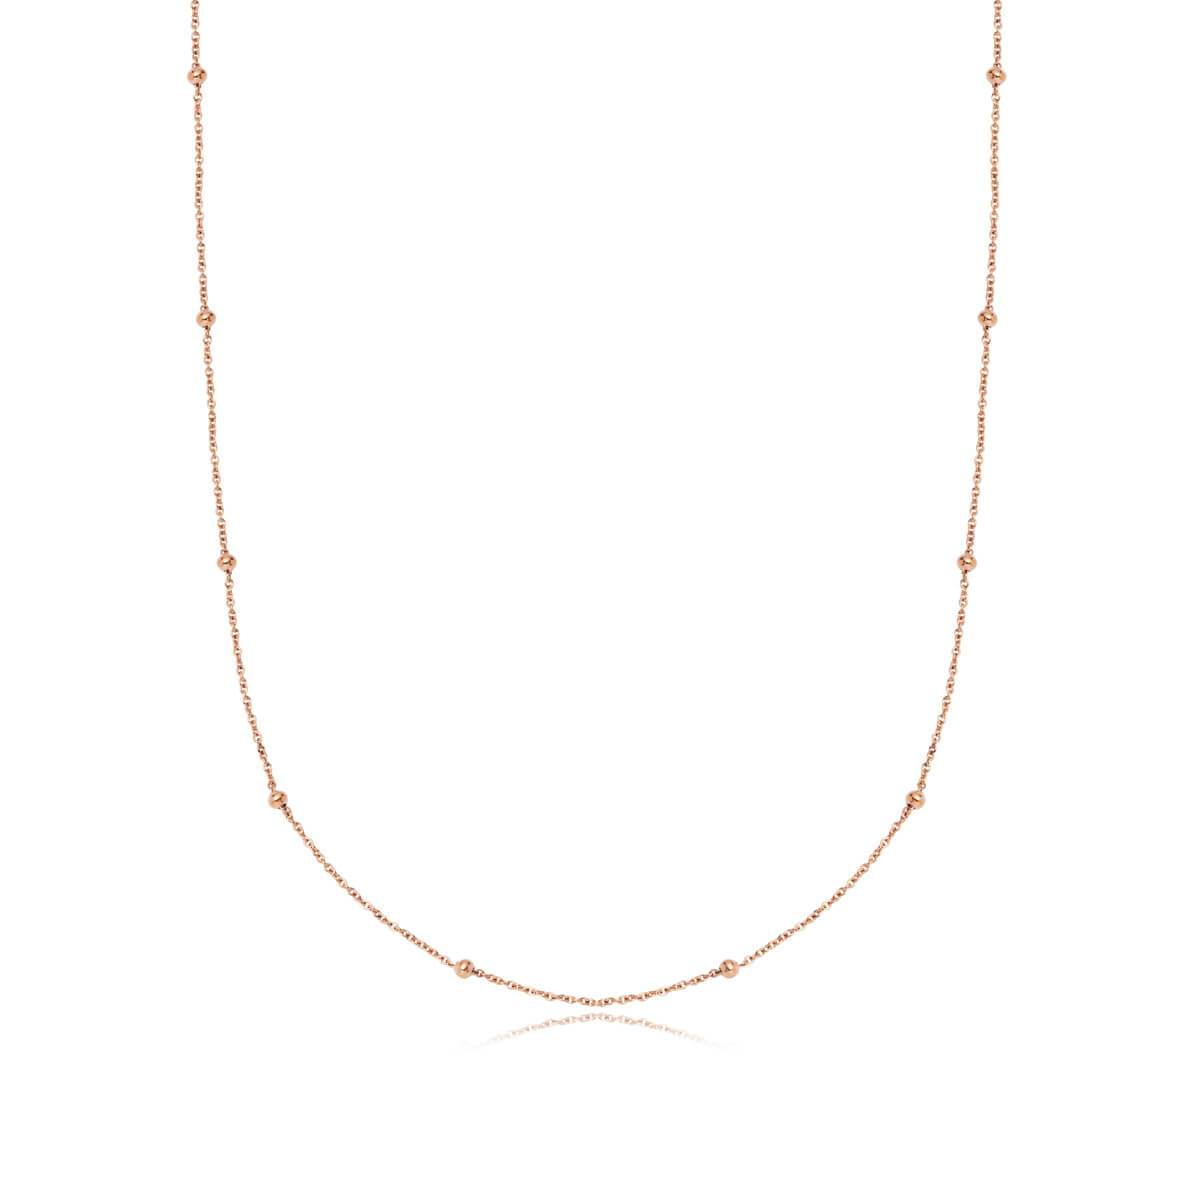 Selected Sphere Chain Necklace 16 in (Rose Gold)